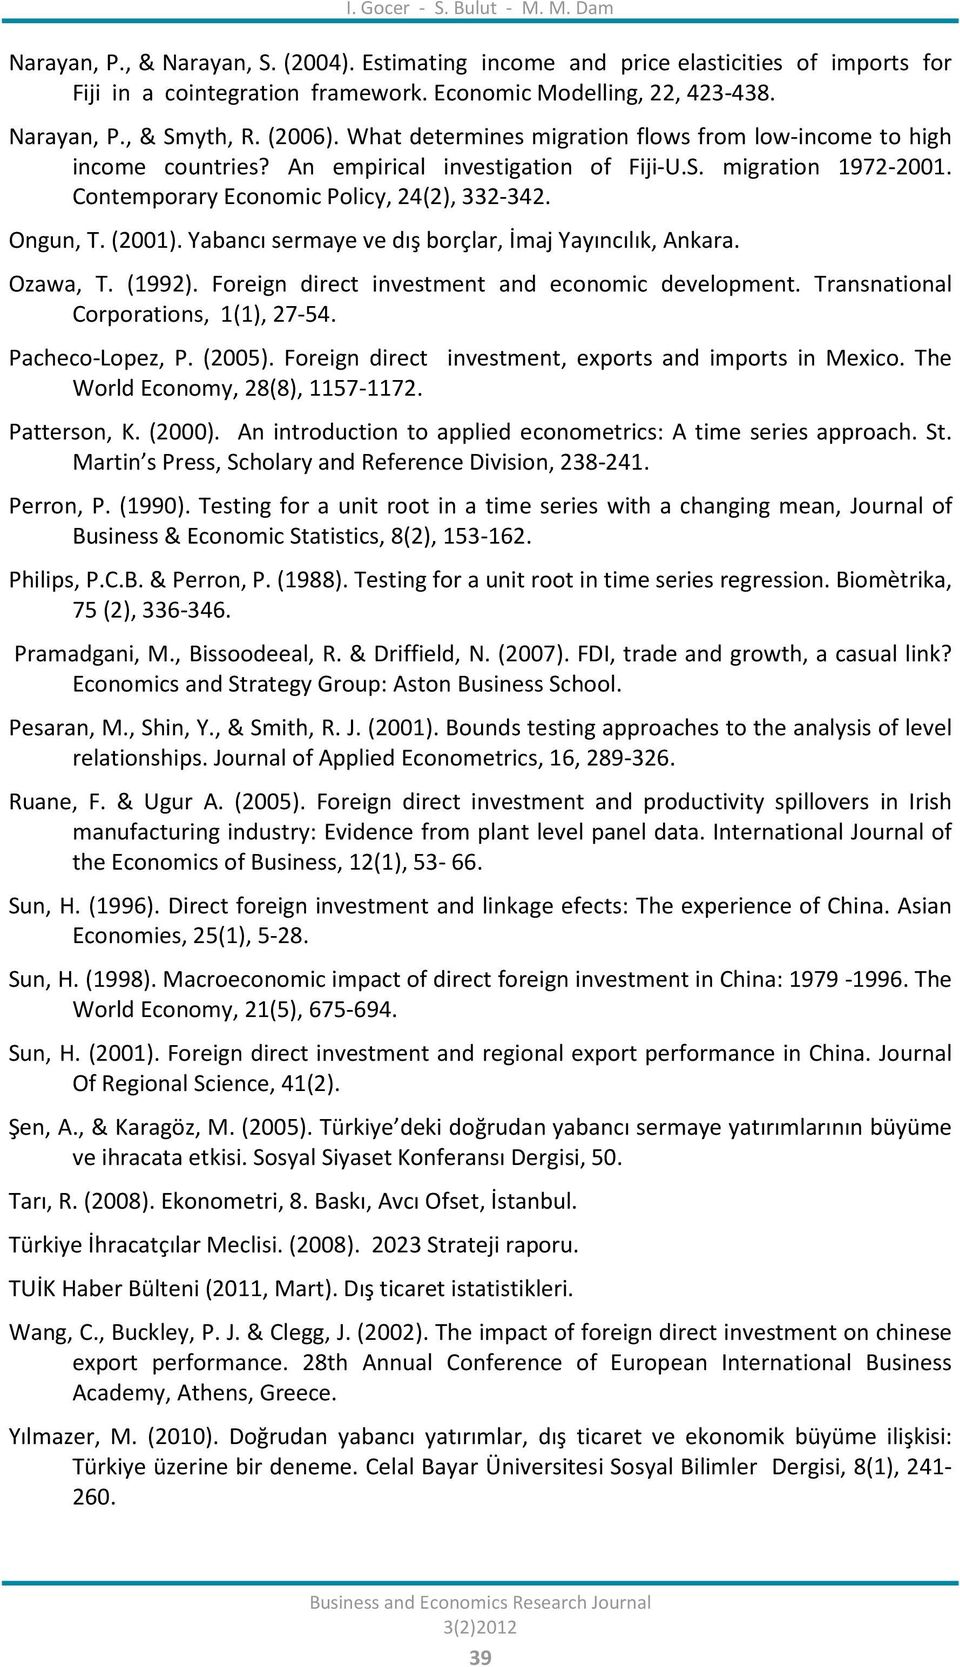 Contemporary Economic Policy, 24(2), 332-342. Ongun, T. (2001). Yabancı sermaye ve dış borçlar, İmaj Yayıncılık, Ankara. Ozawa, T. (1992). Foreign direct investment and economic development.